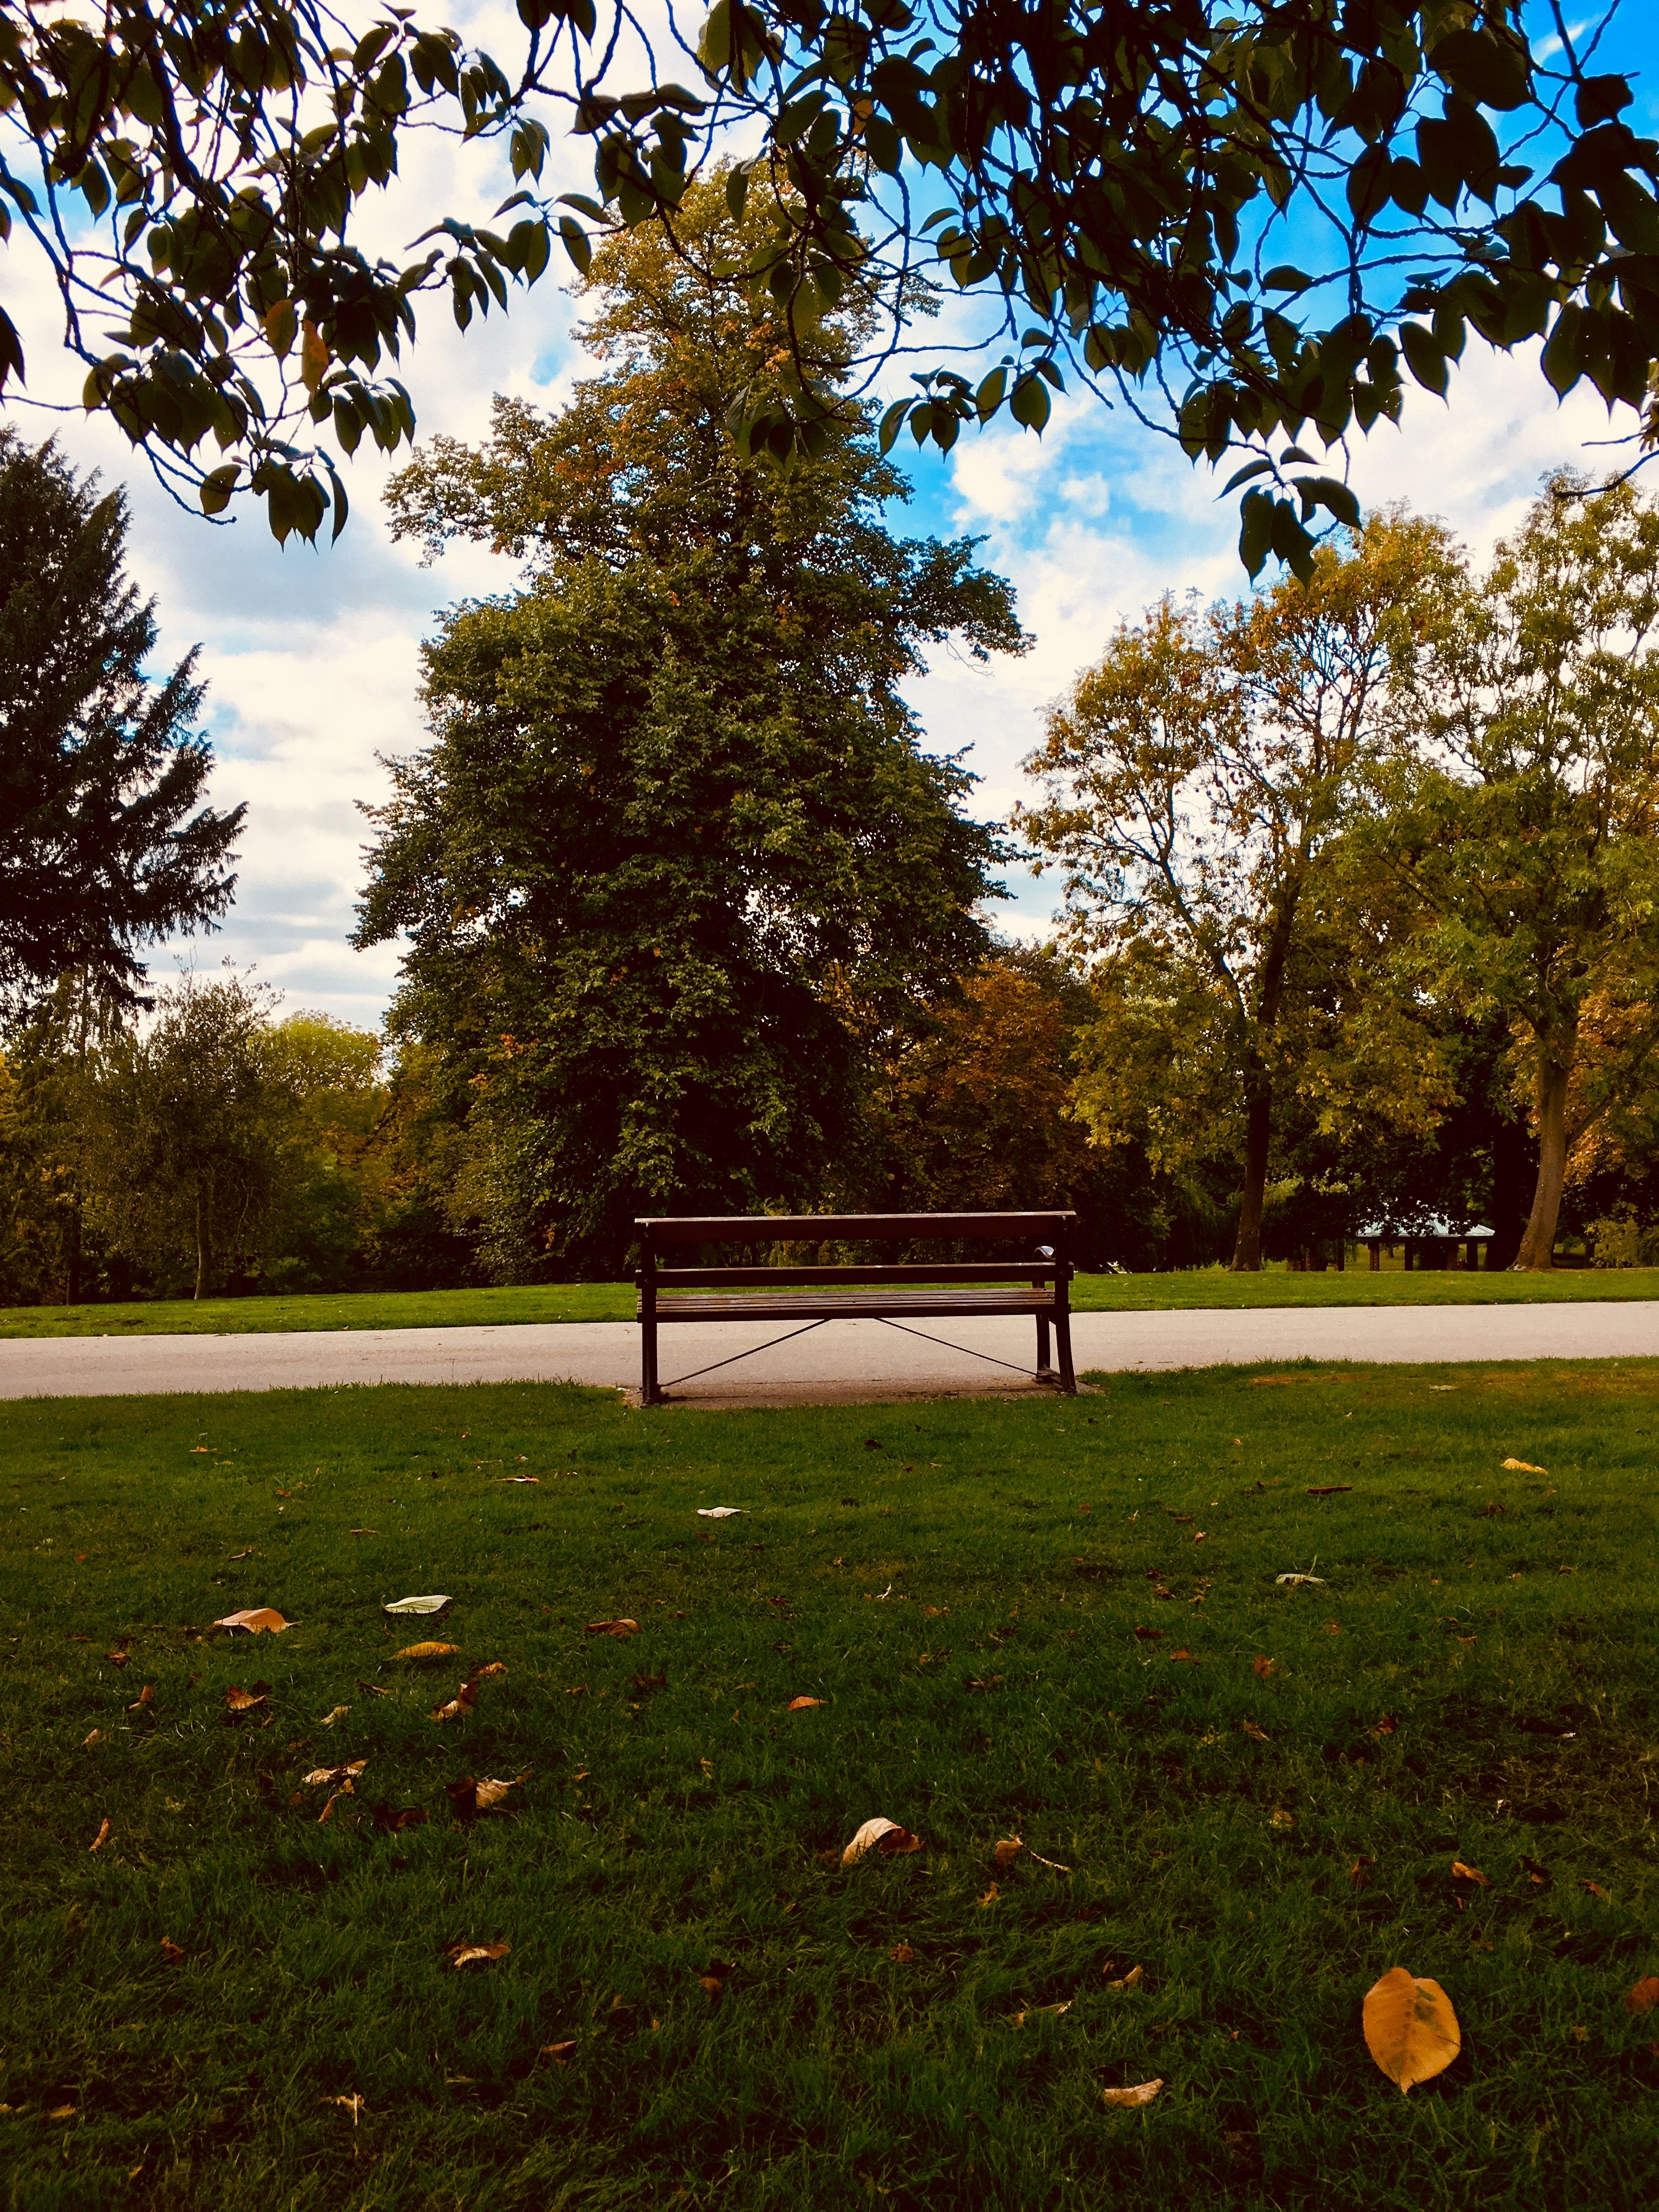 Aesthetic Park Background : aesthetic, background, Bench, Outdoor, Park,, Green, Aesthetic,